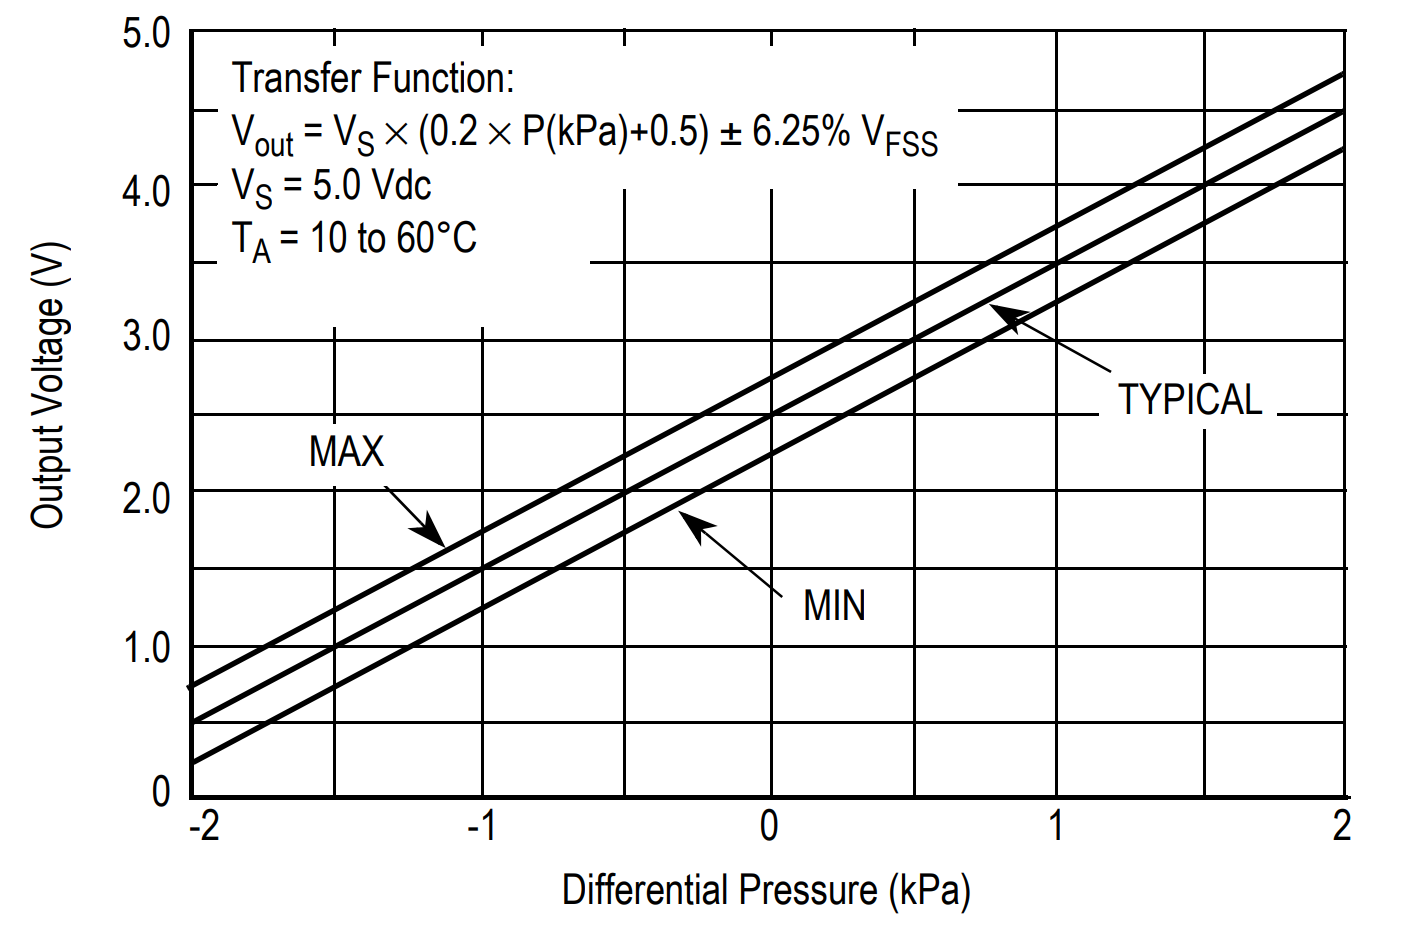 - Voltage vs. Pressure relationship for representing the pressure differential as a function of voltage. This plot will be essential for relating the voltage read by the Arduino analog pin back to the pressure differential between the stagnation pressure and static pressure.